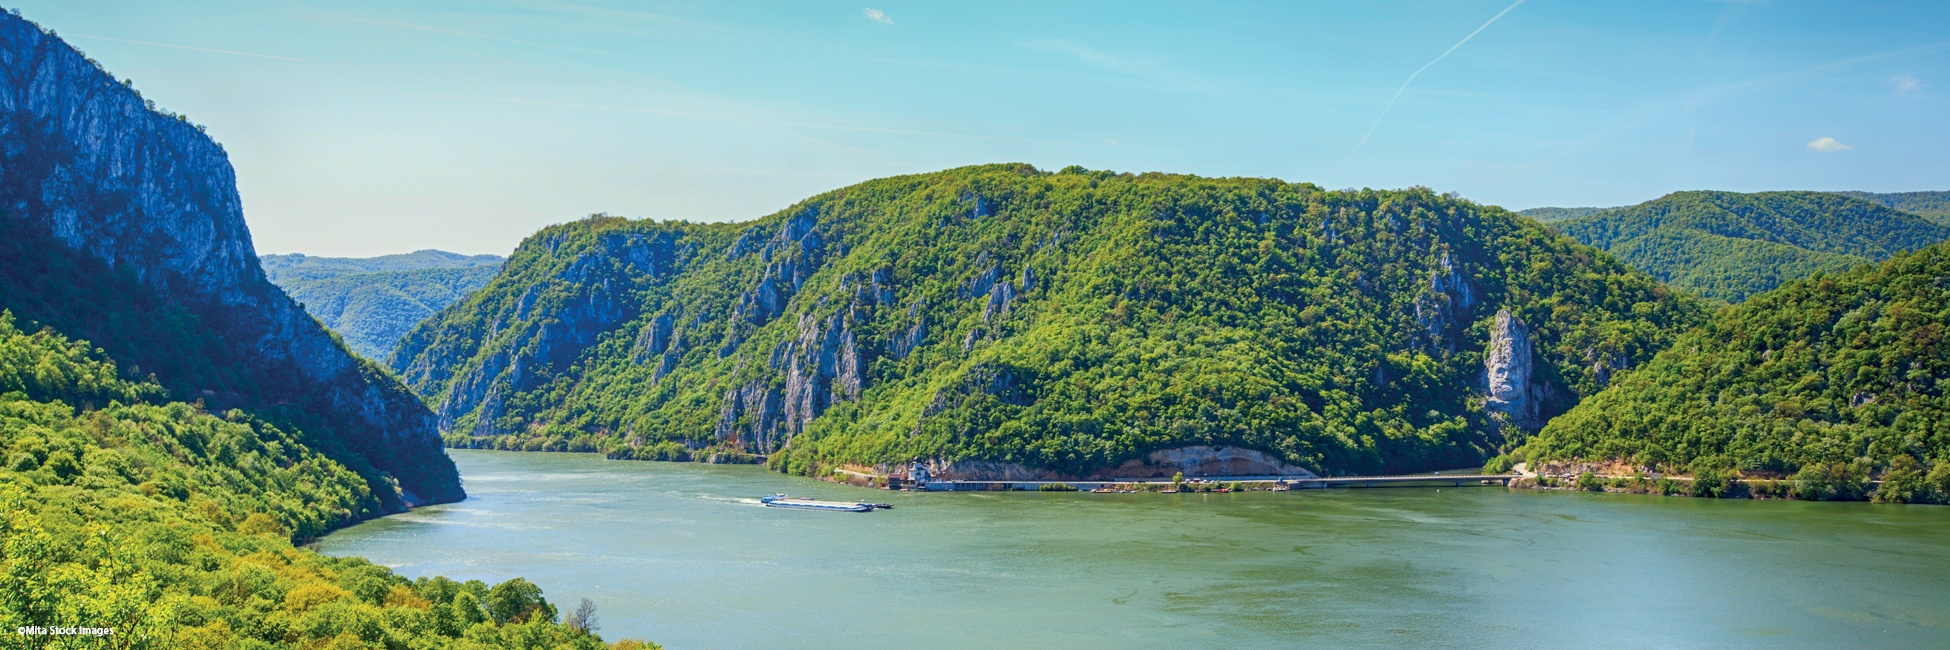 from the danube to the black sea croisieurope cruises